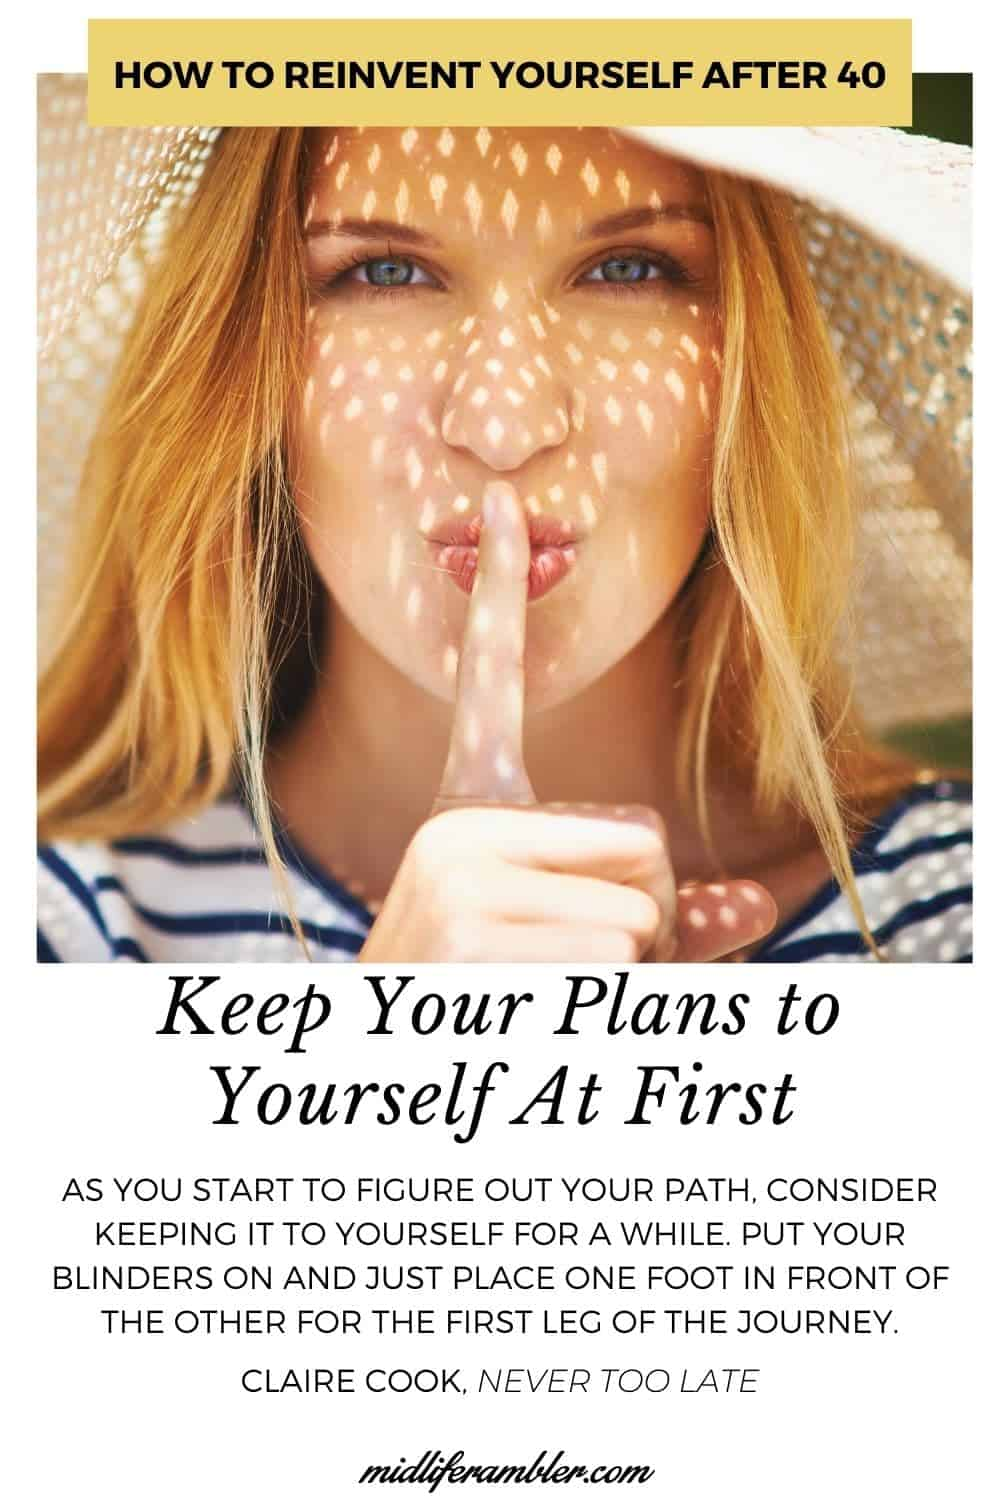 Woman signaling quiet - keep your plans to yourself when reinventing yourself